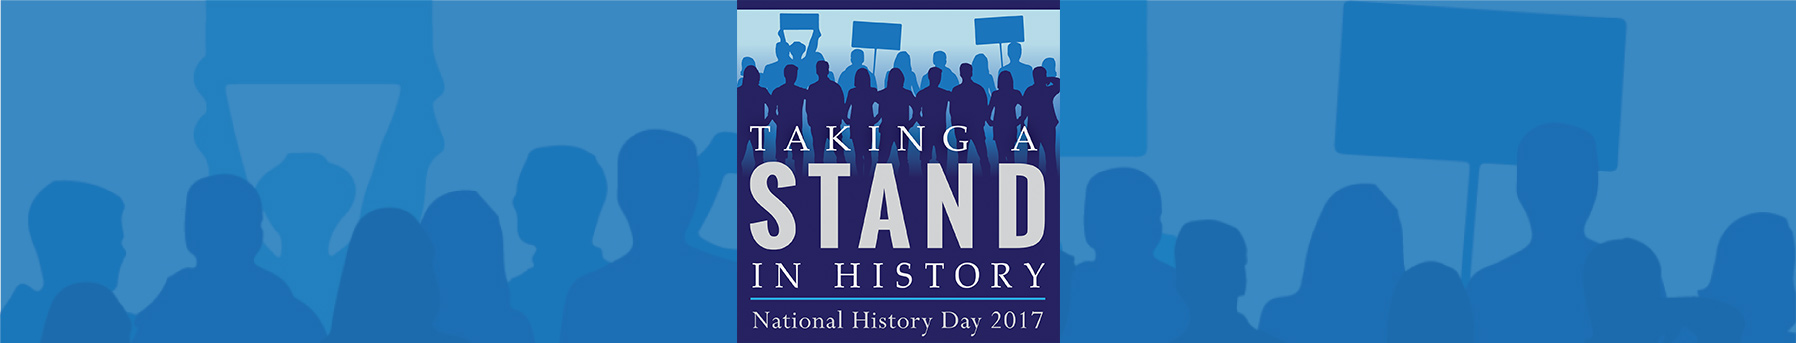 taking a stand in history national history day nhd taking a stand in history